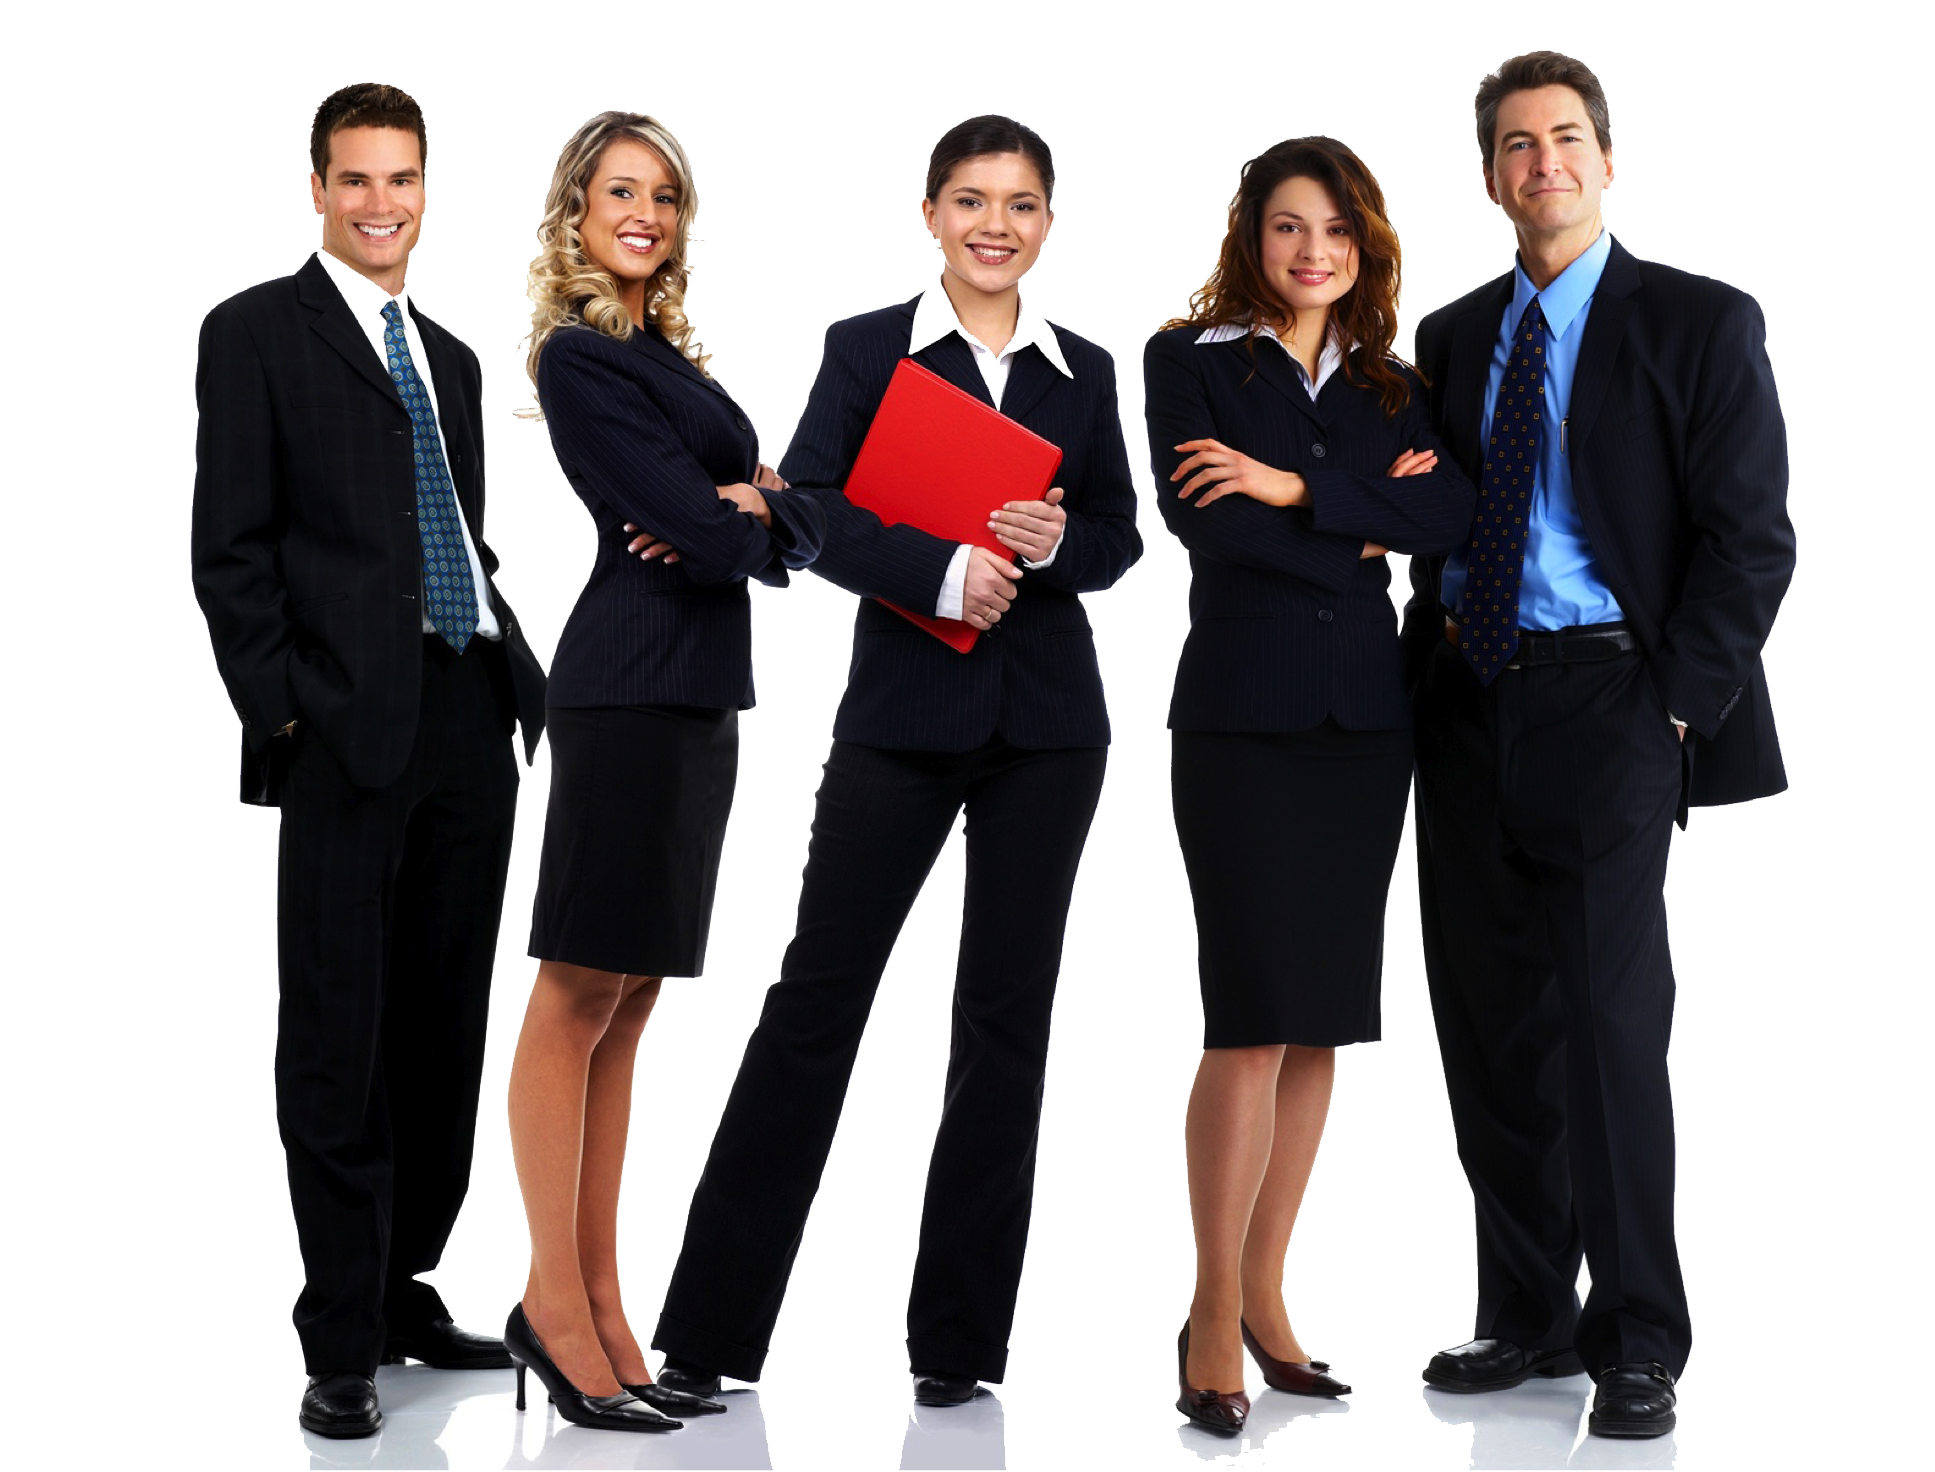 Business person png. People hd mart